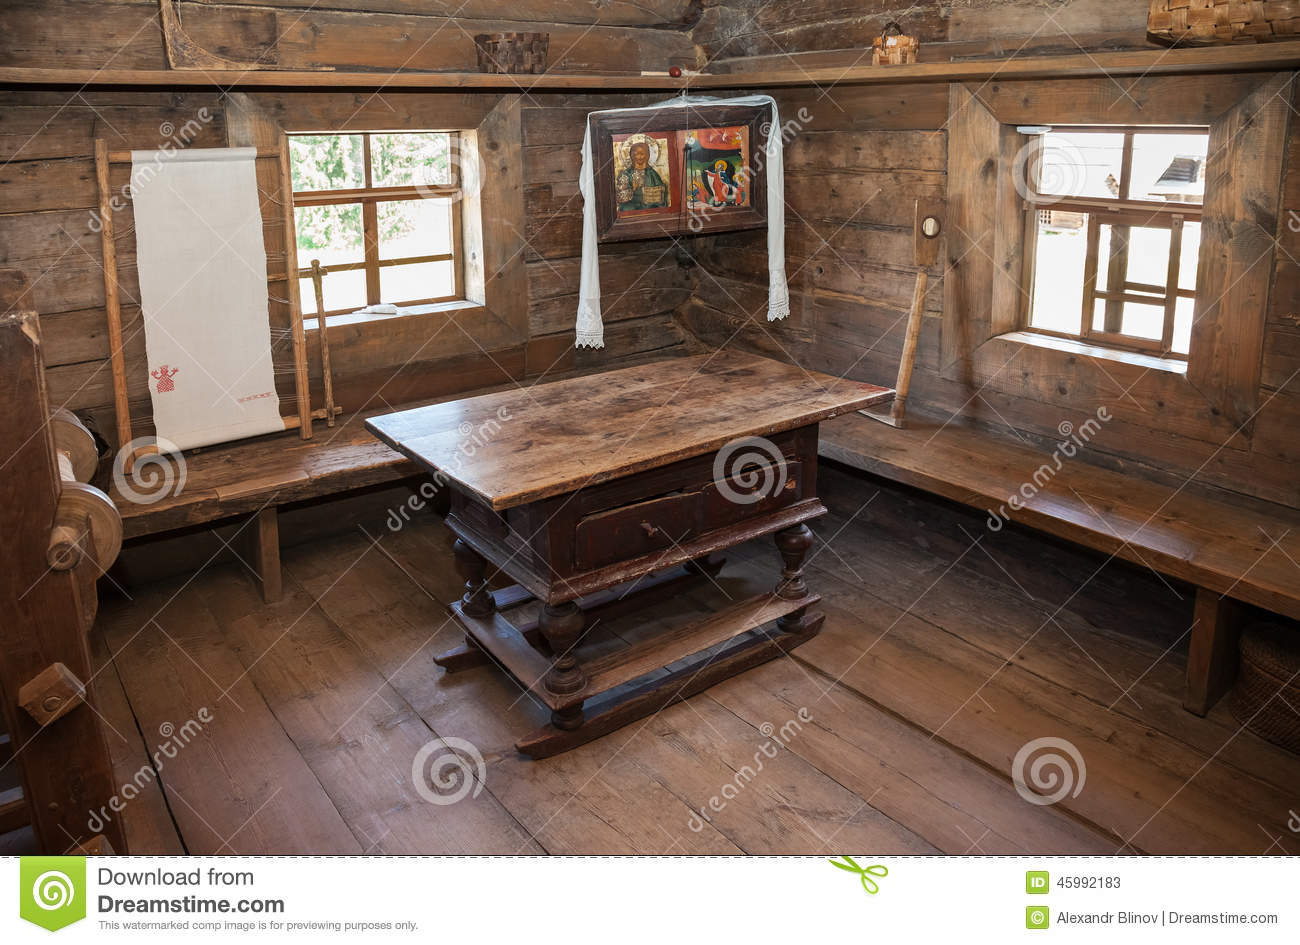 Int rieur de vieille maison en bois rurale photo stock - Interieur de maison ...